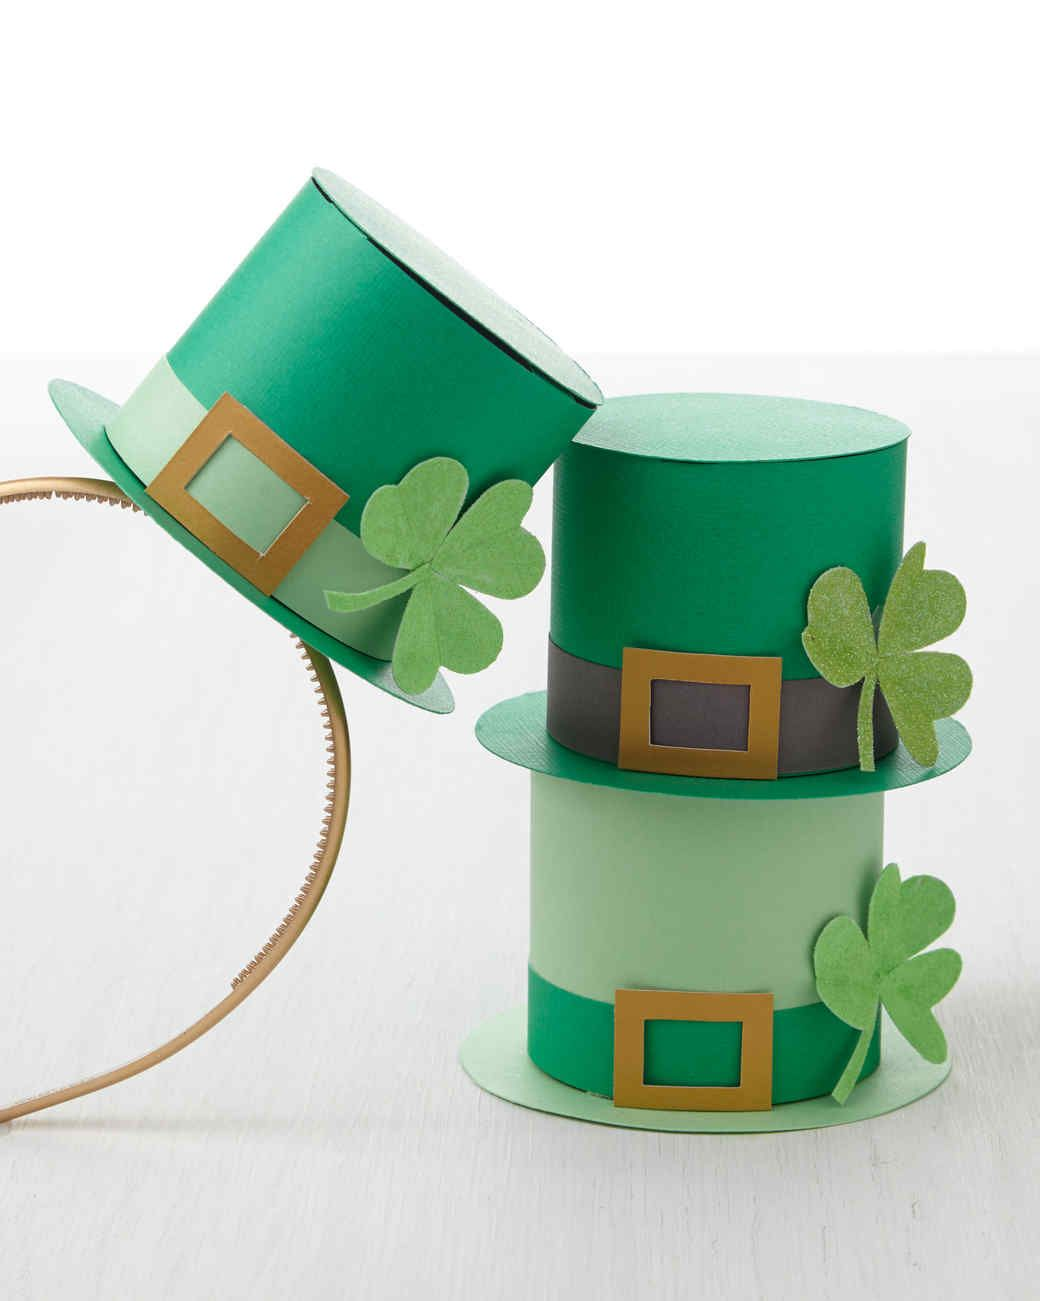 17 St Patrick S Day Crafts And Decorations St Patrick S Day